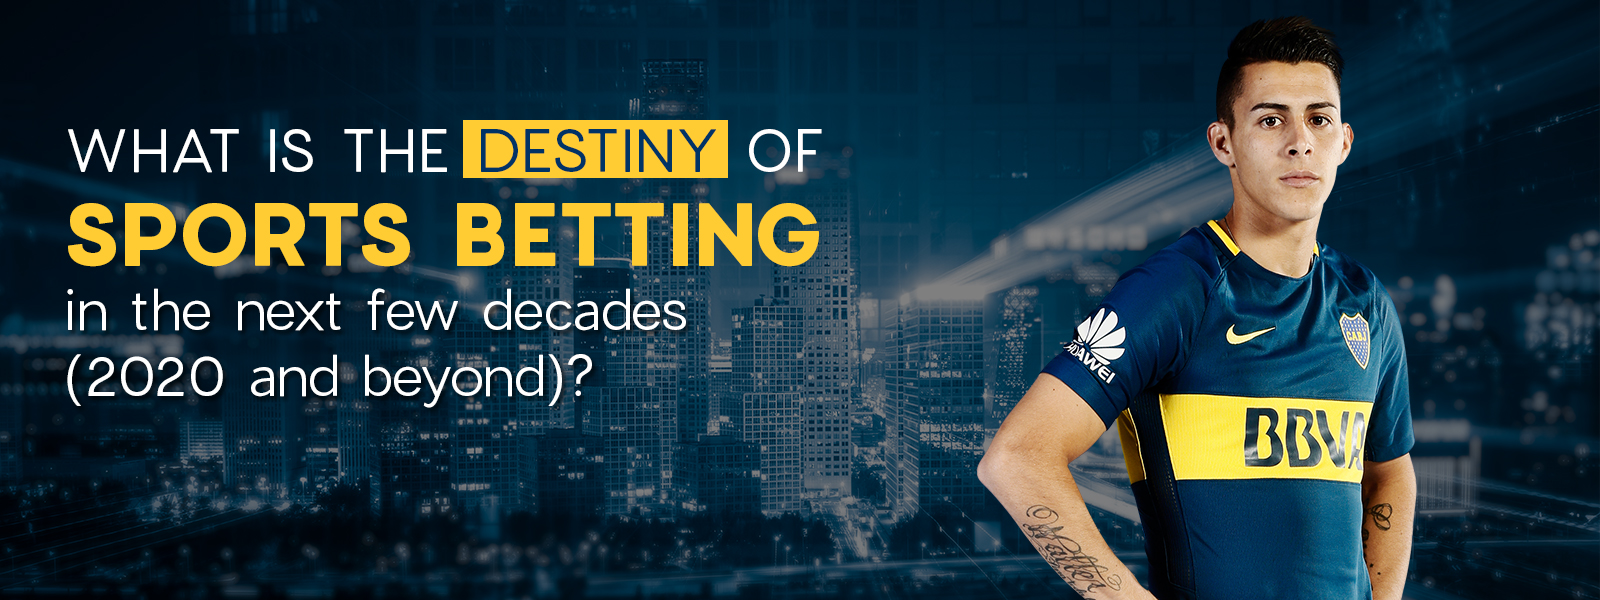 Destiny of Sports Betting In The Next Few Decades